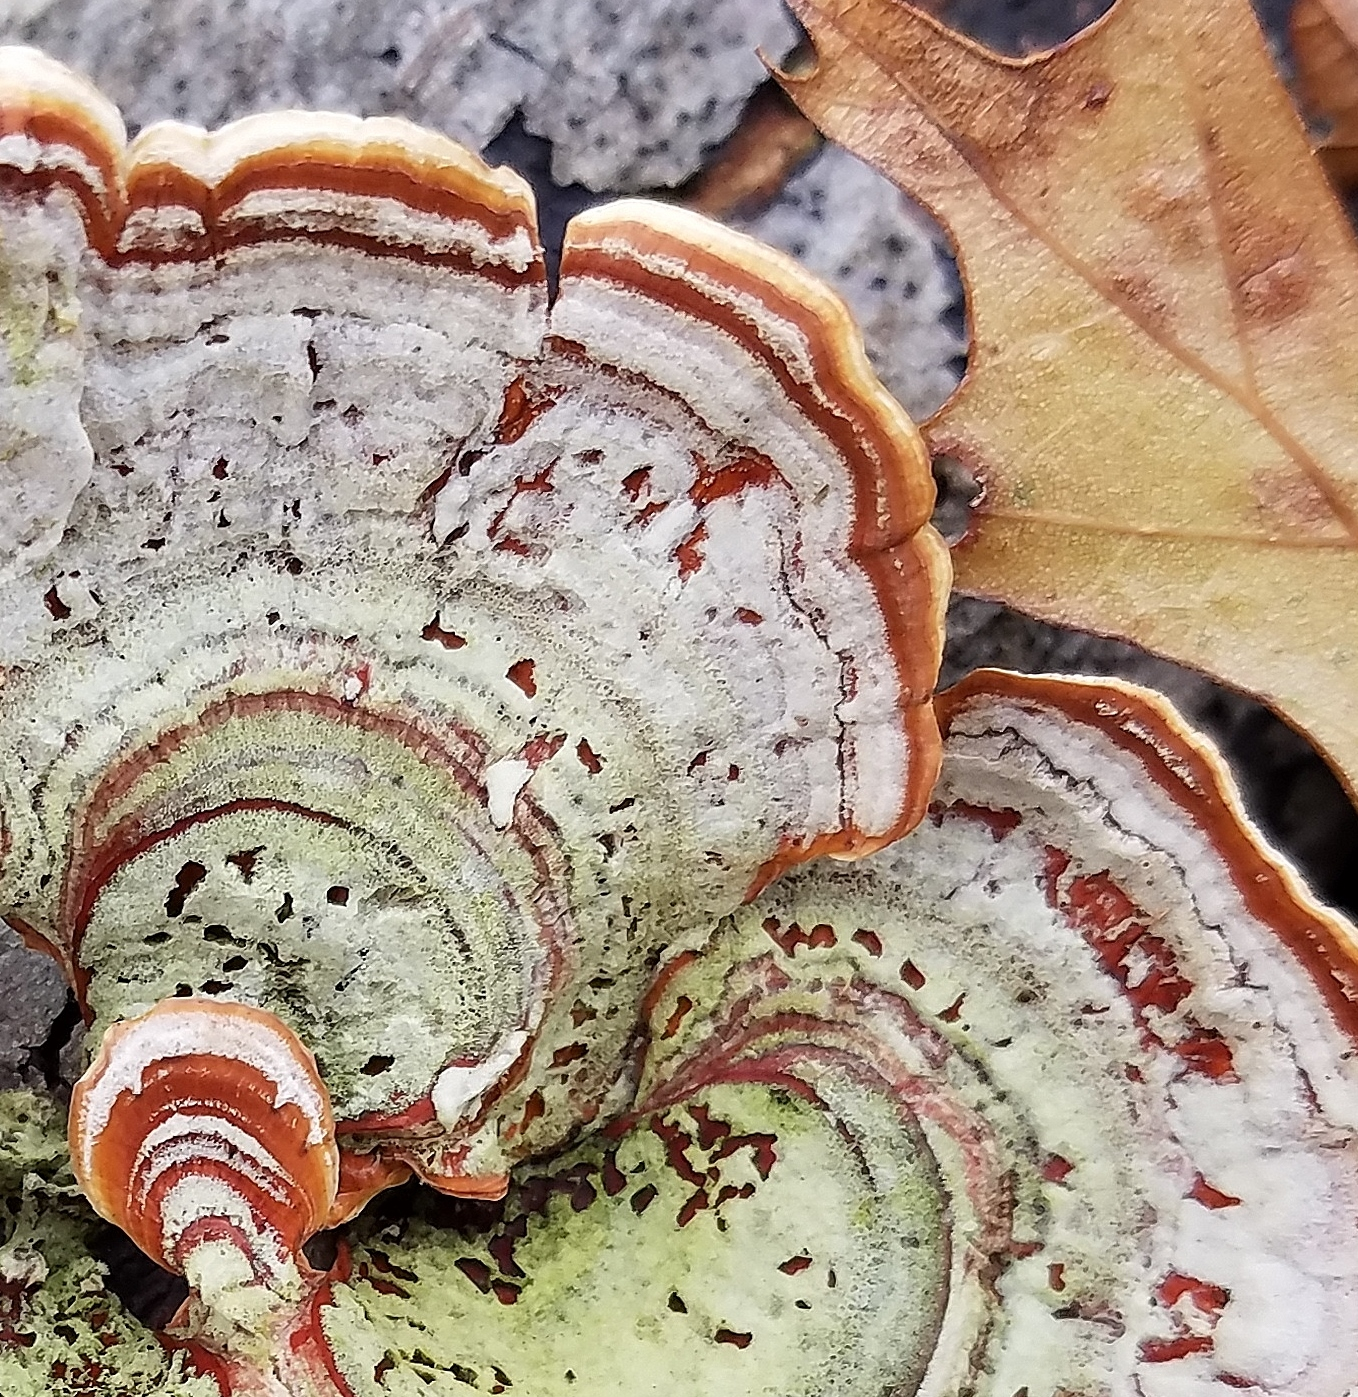 Turkey tail fungus - close crop for texture